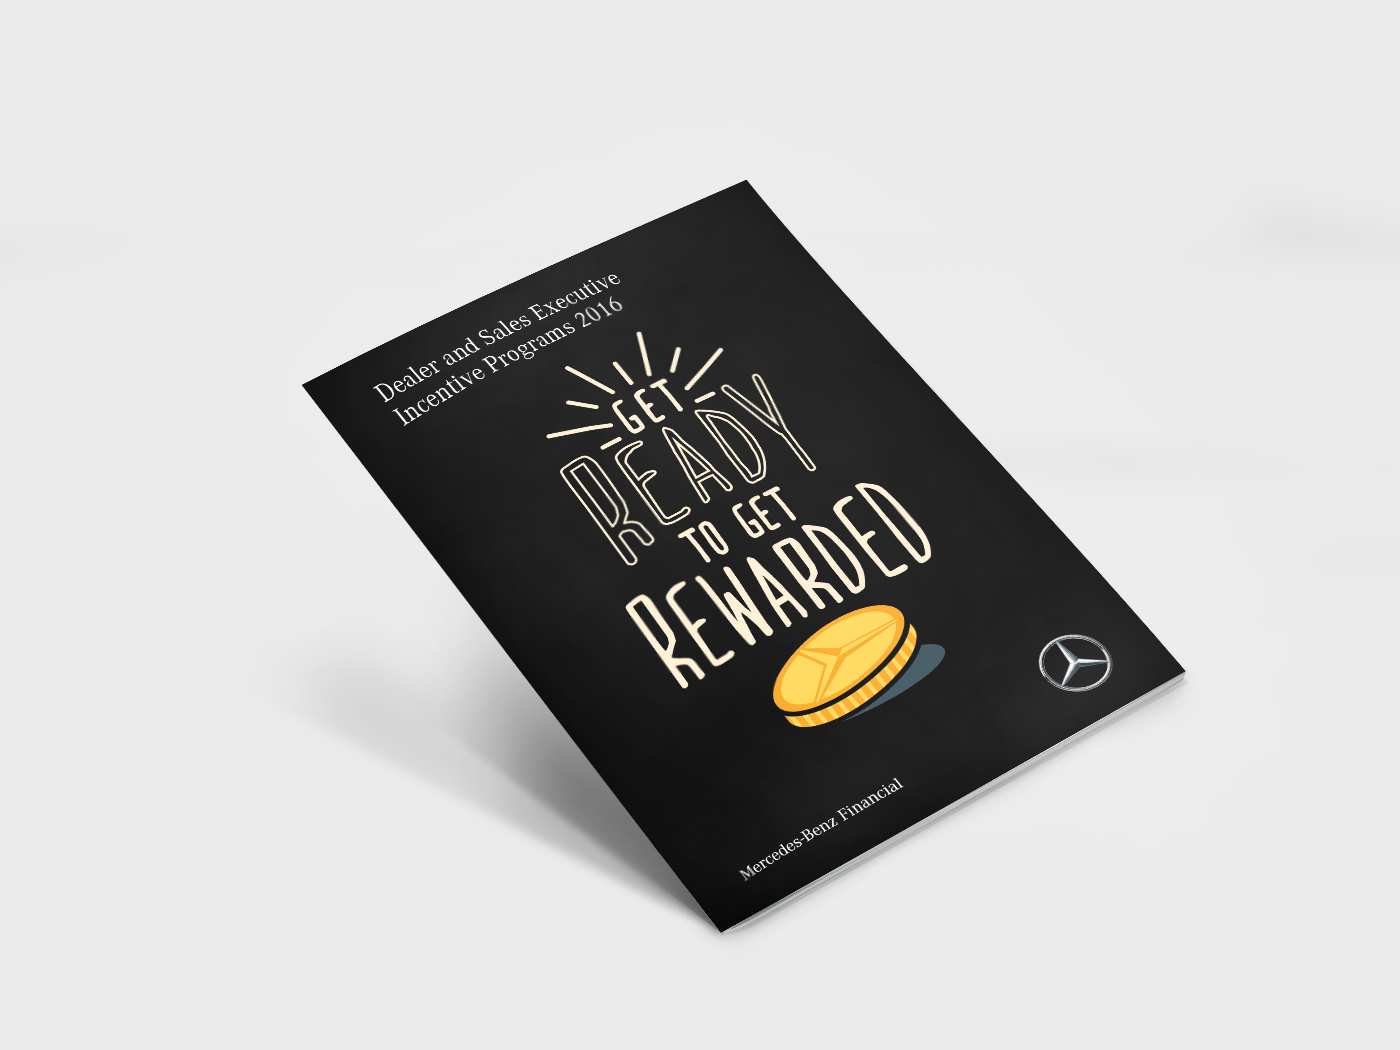 Mercedes-Benz Malaysia Incentive Programs 2016 booklet cover page with typography design and coin illustration containing brand logo